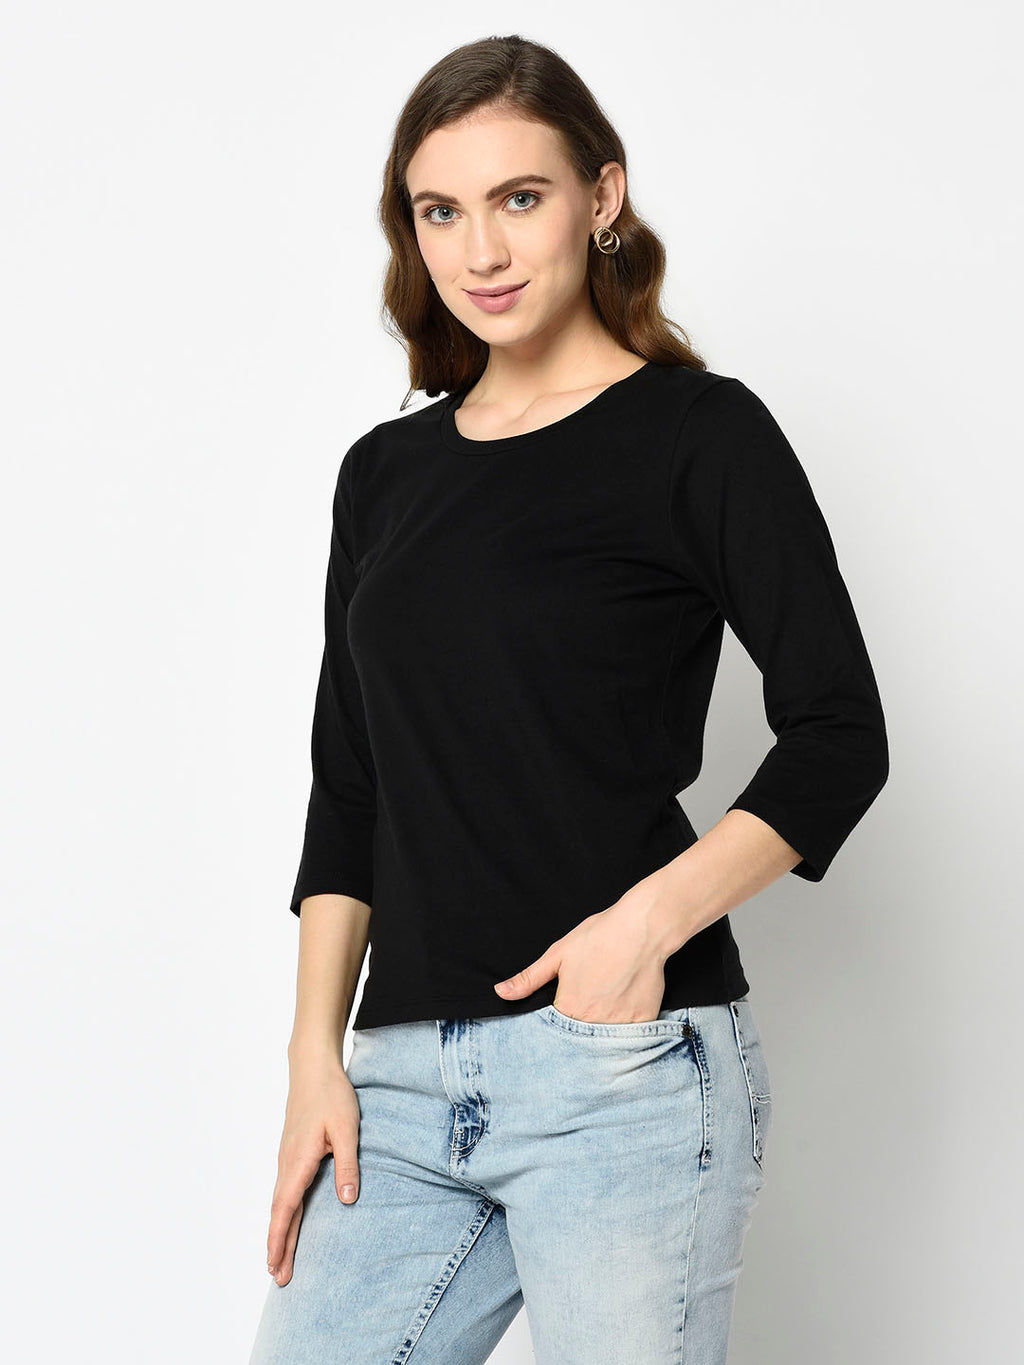 Black Roundneck with Three Quarter Sleeves